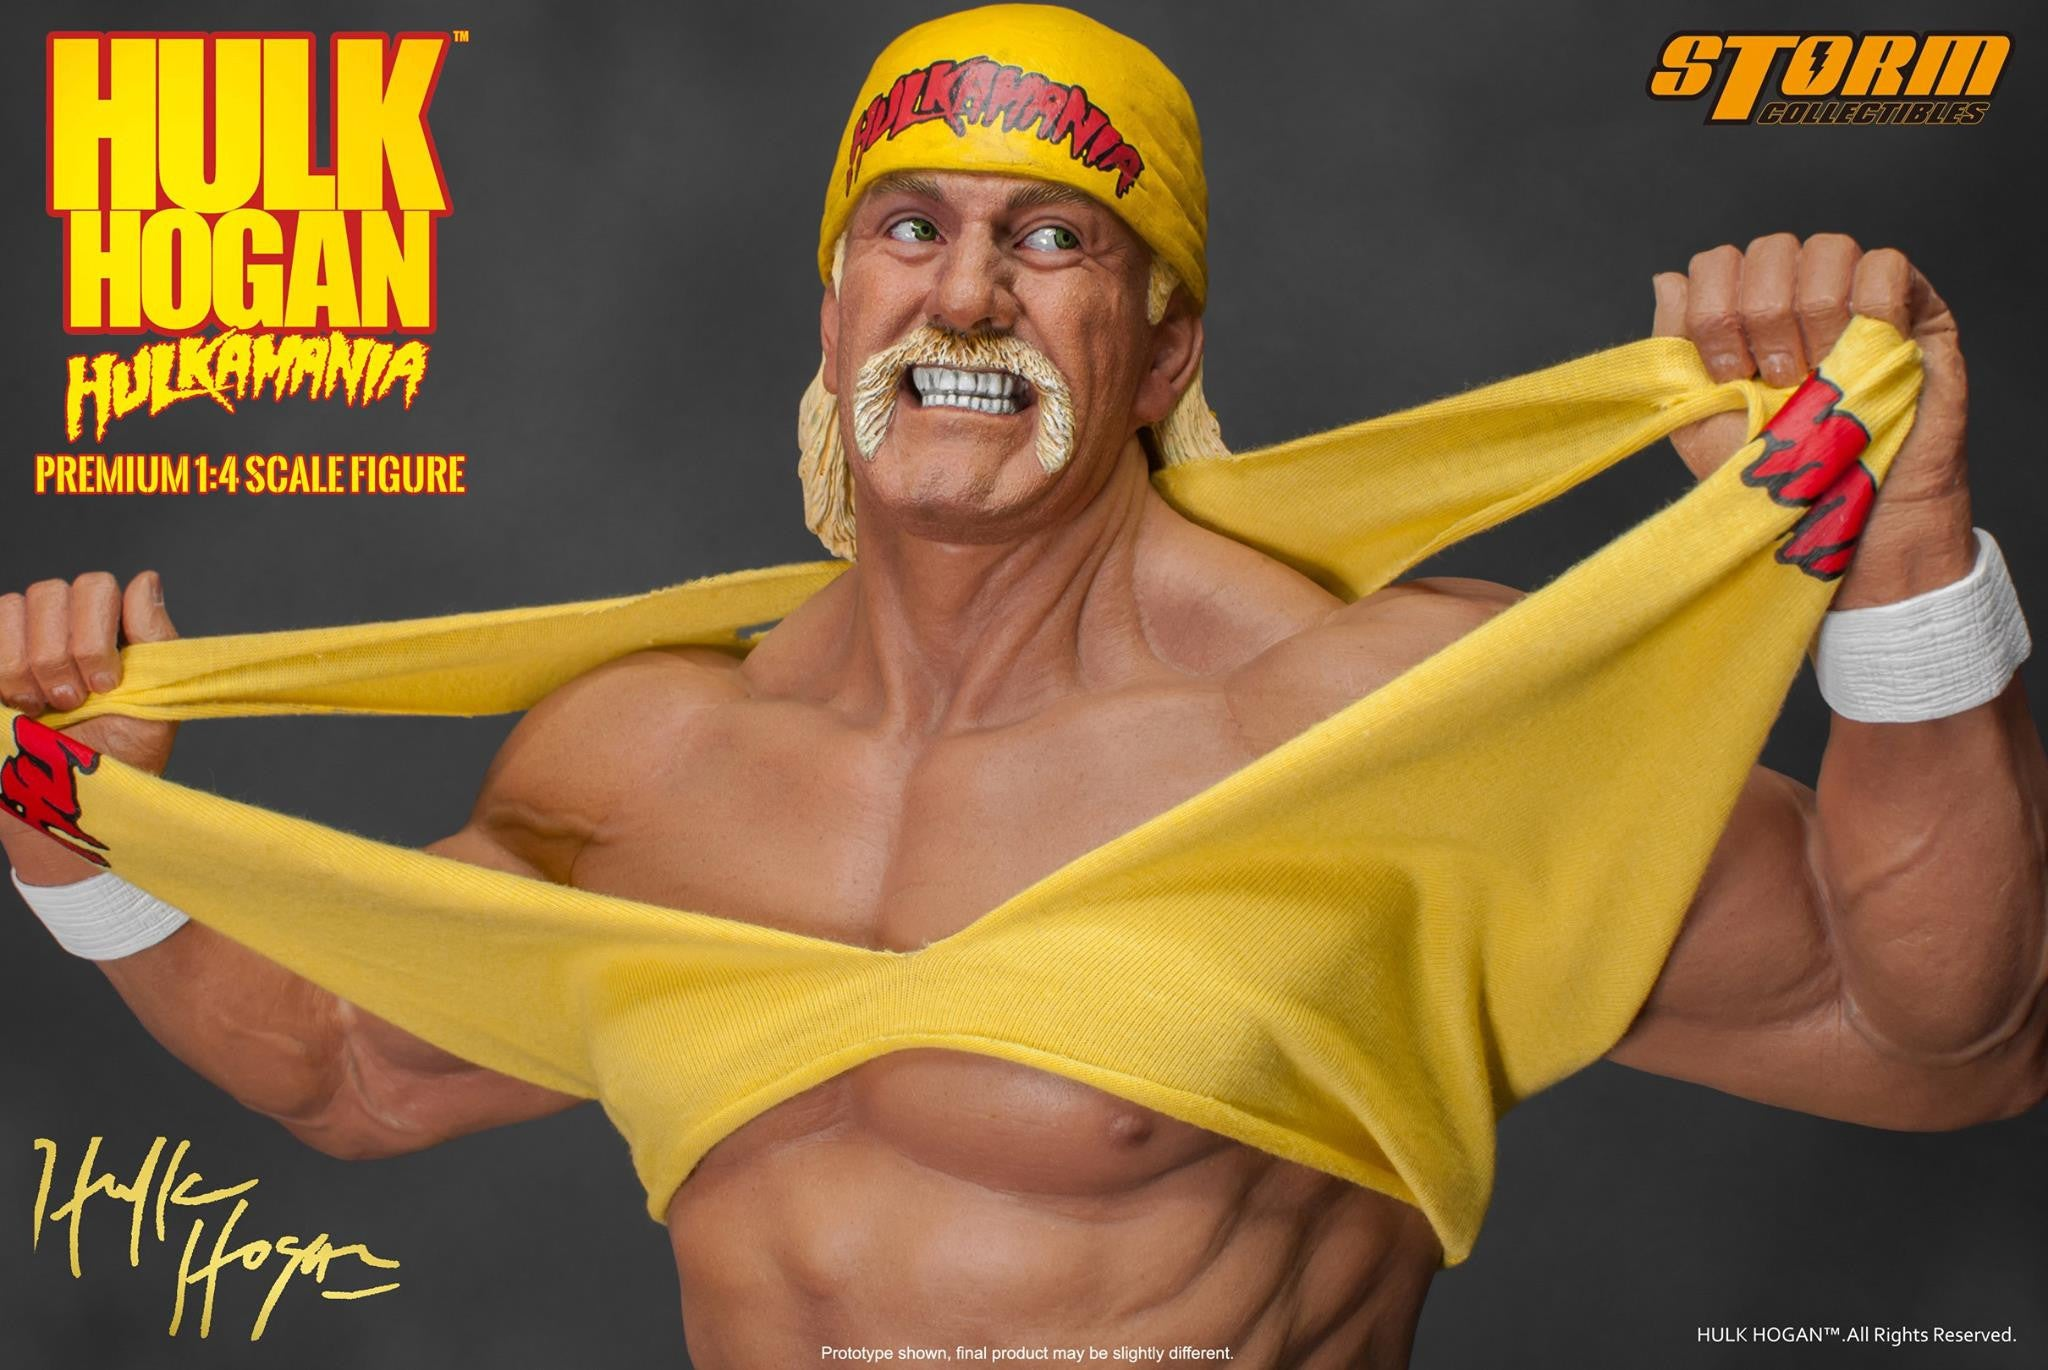 Storm Collectibles - 1/4th Scale Premium Figure - Hulk Hogan Hulkamania - Marvelous Toys - 3